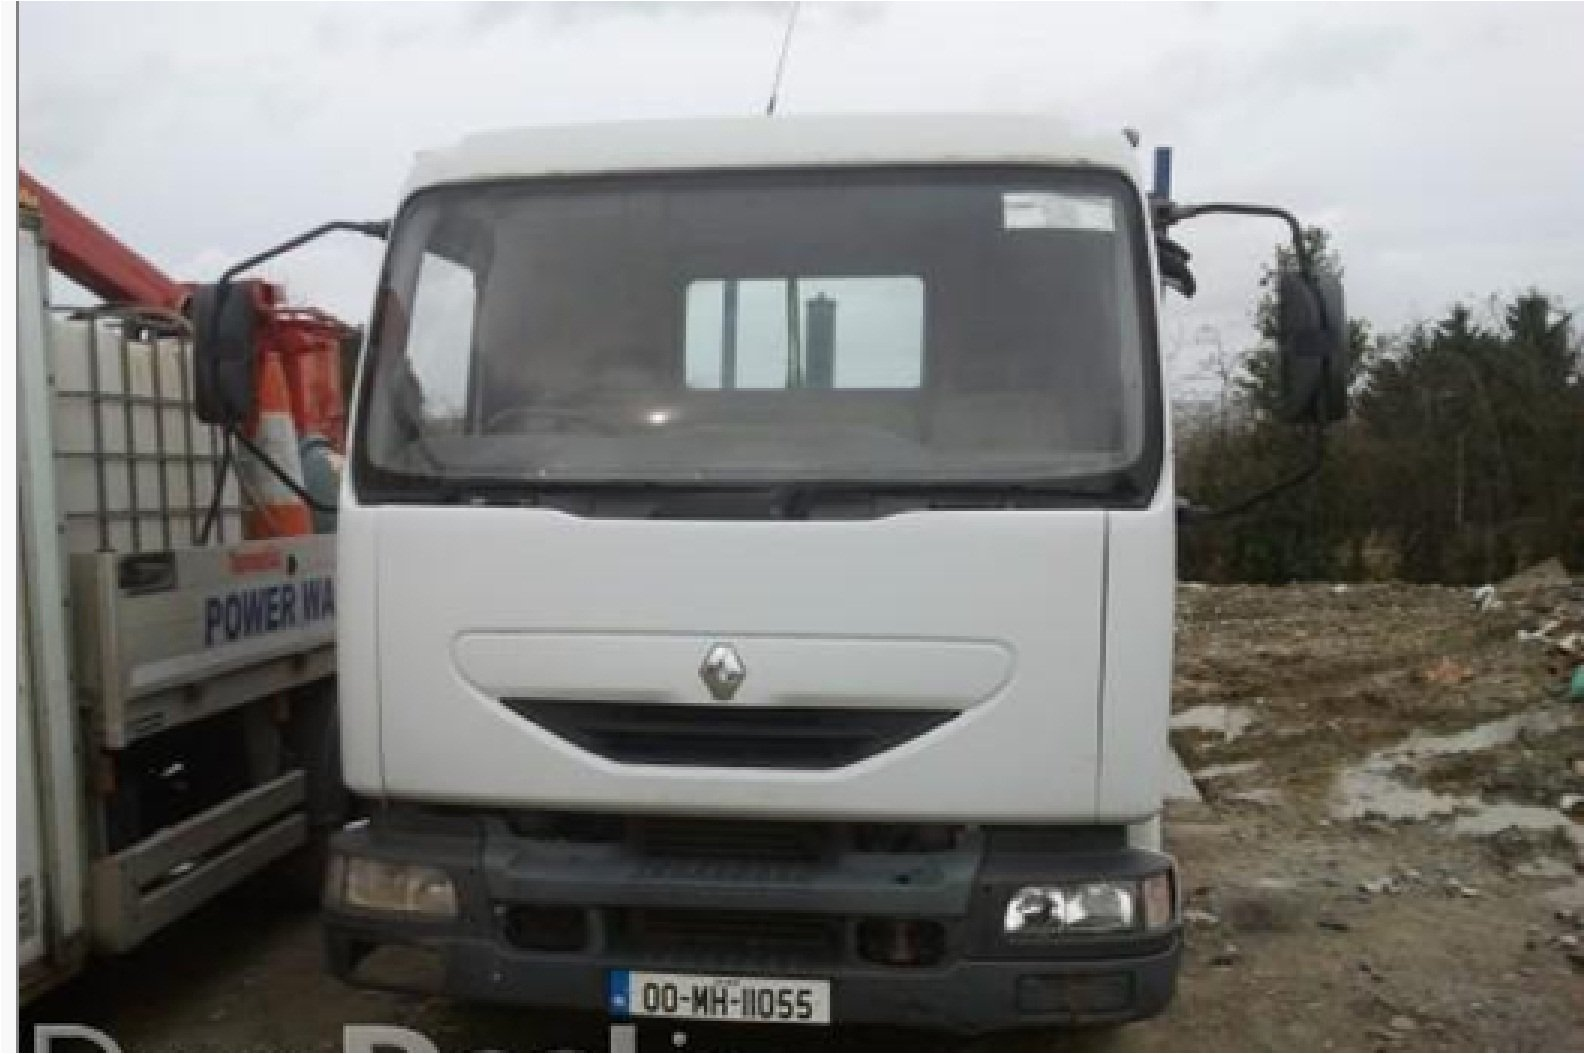 FOR SALE: 2000 Renault midlum 150 with tipper